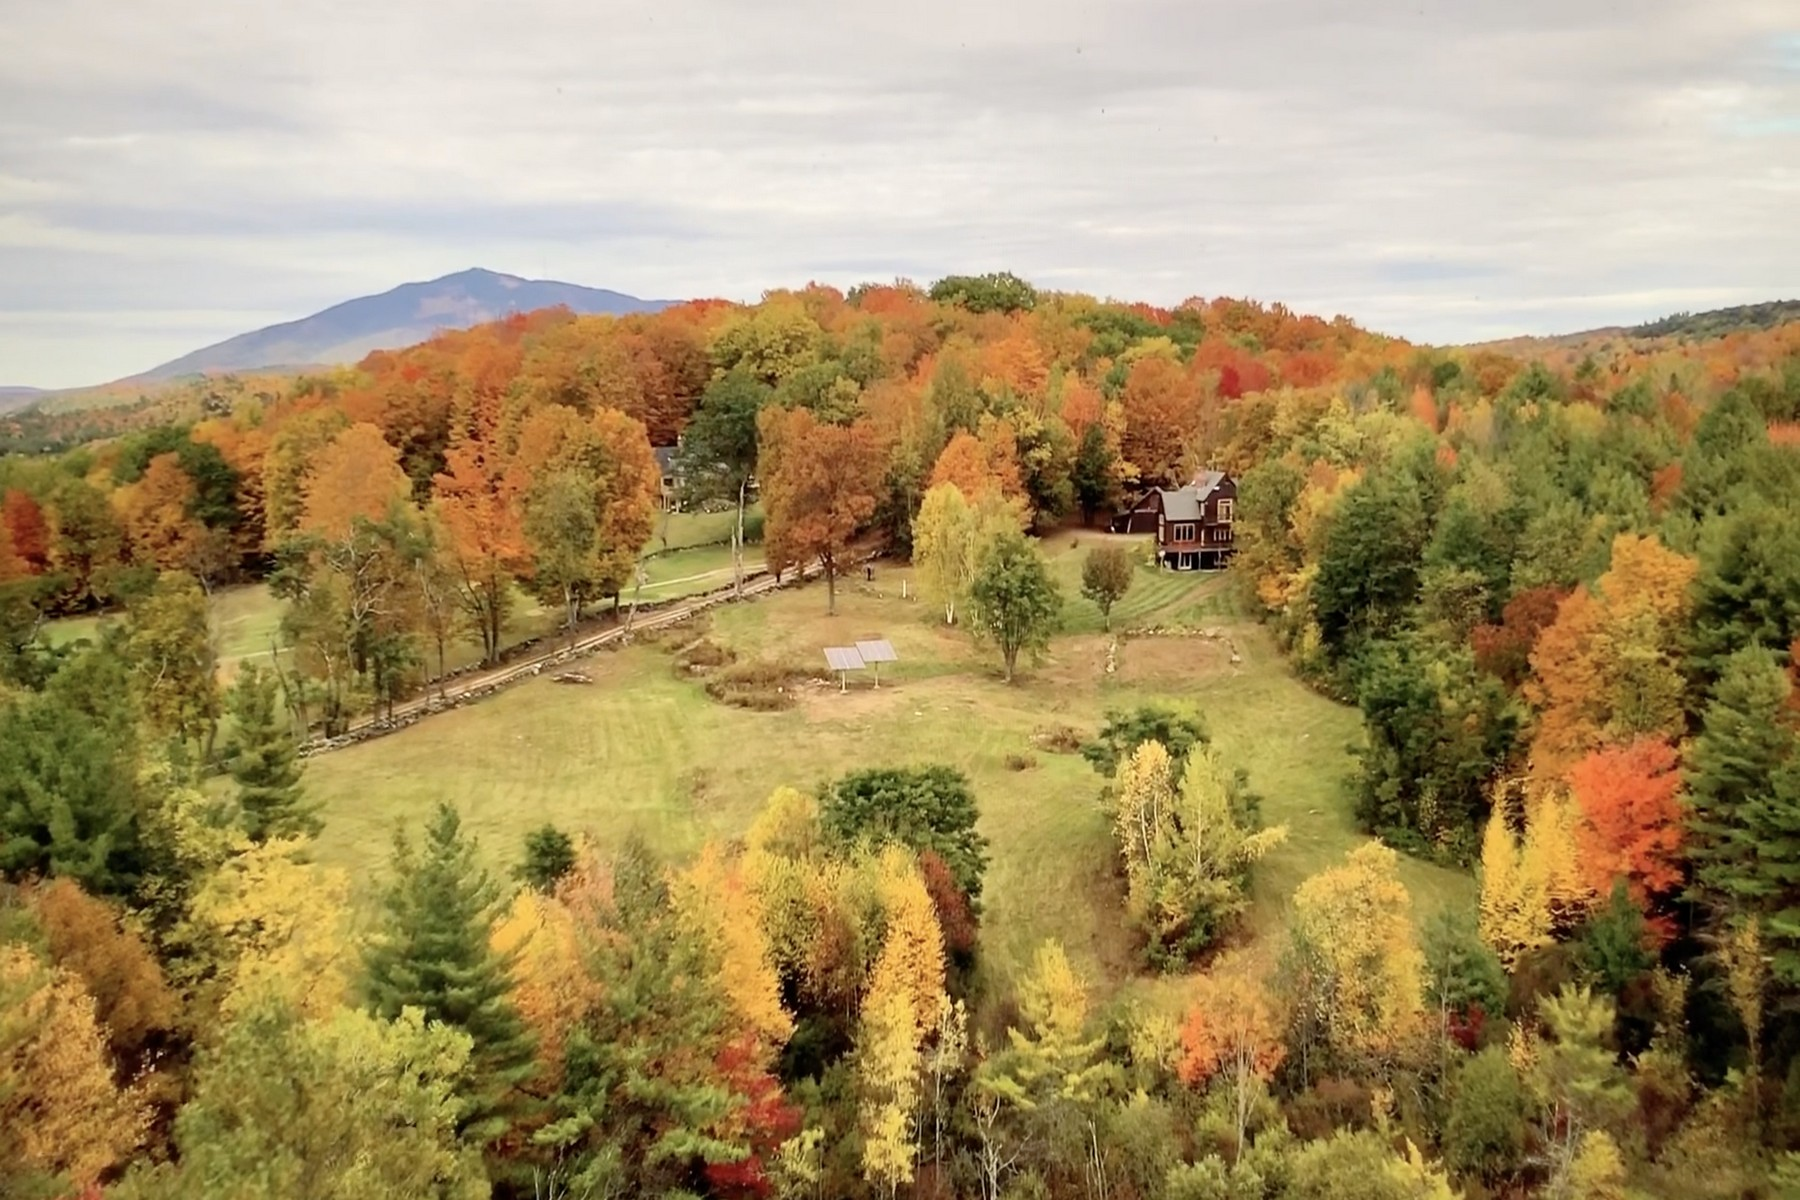 Single Family Homes for Sale at Spacious Home on 100 Acres 322 Stone Hill Farm Rd Weathersfield, Vermont 05151 United States